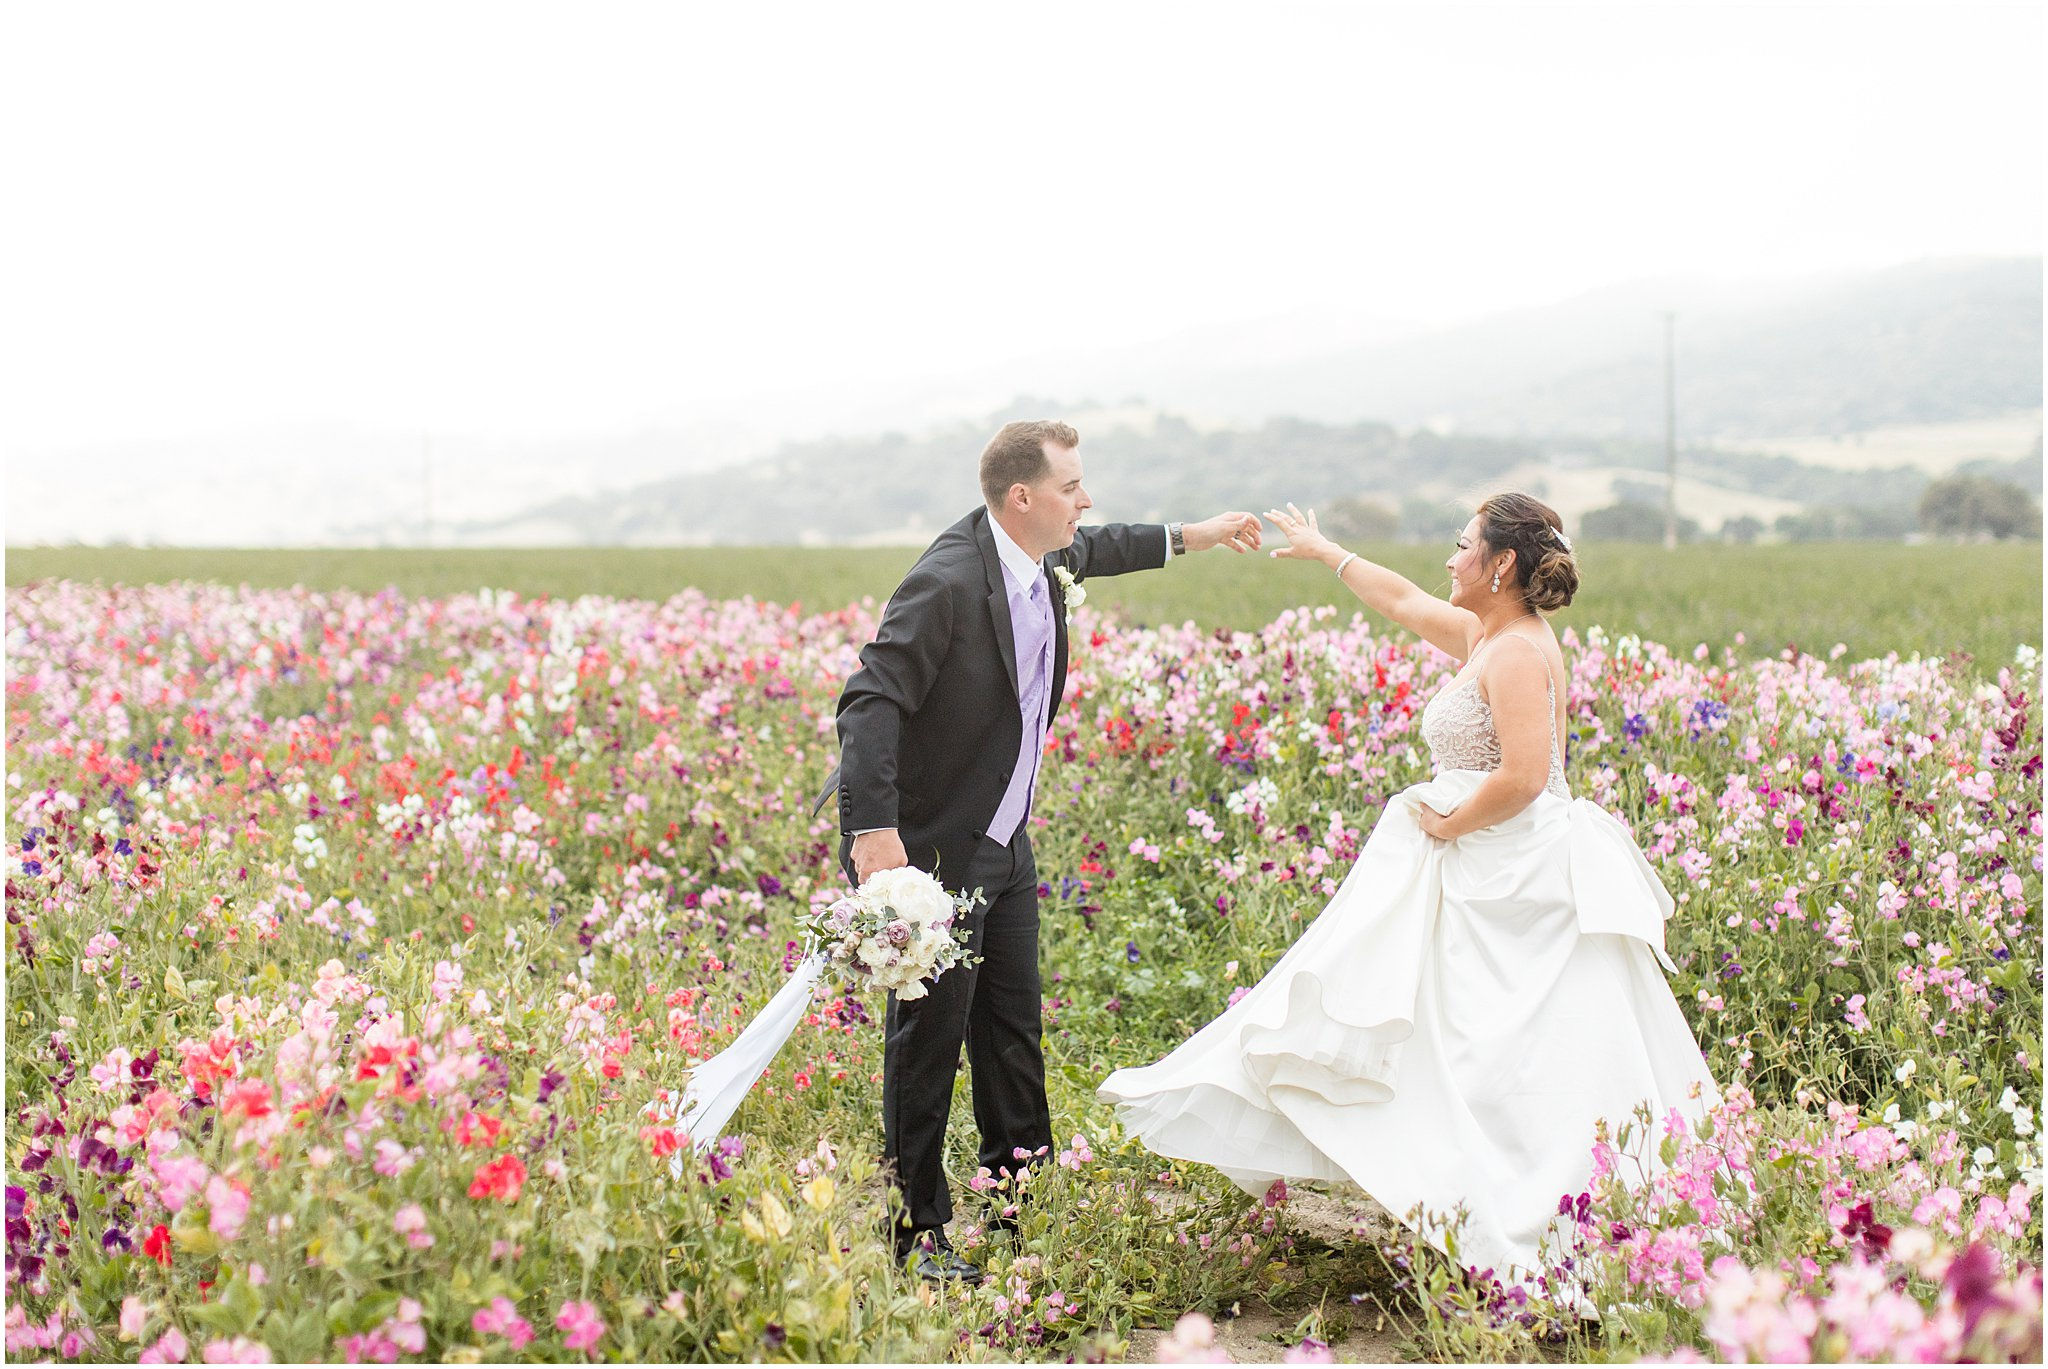 2019 wedding san juan bautista hacienda de leal vineyards bay area wedding photographer_0080.jpg